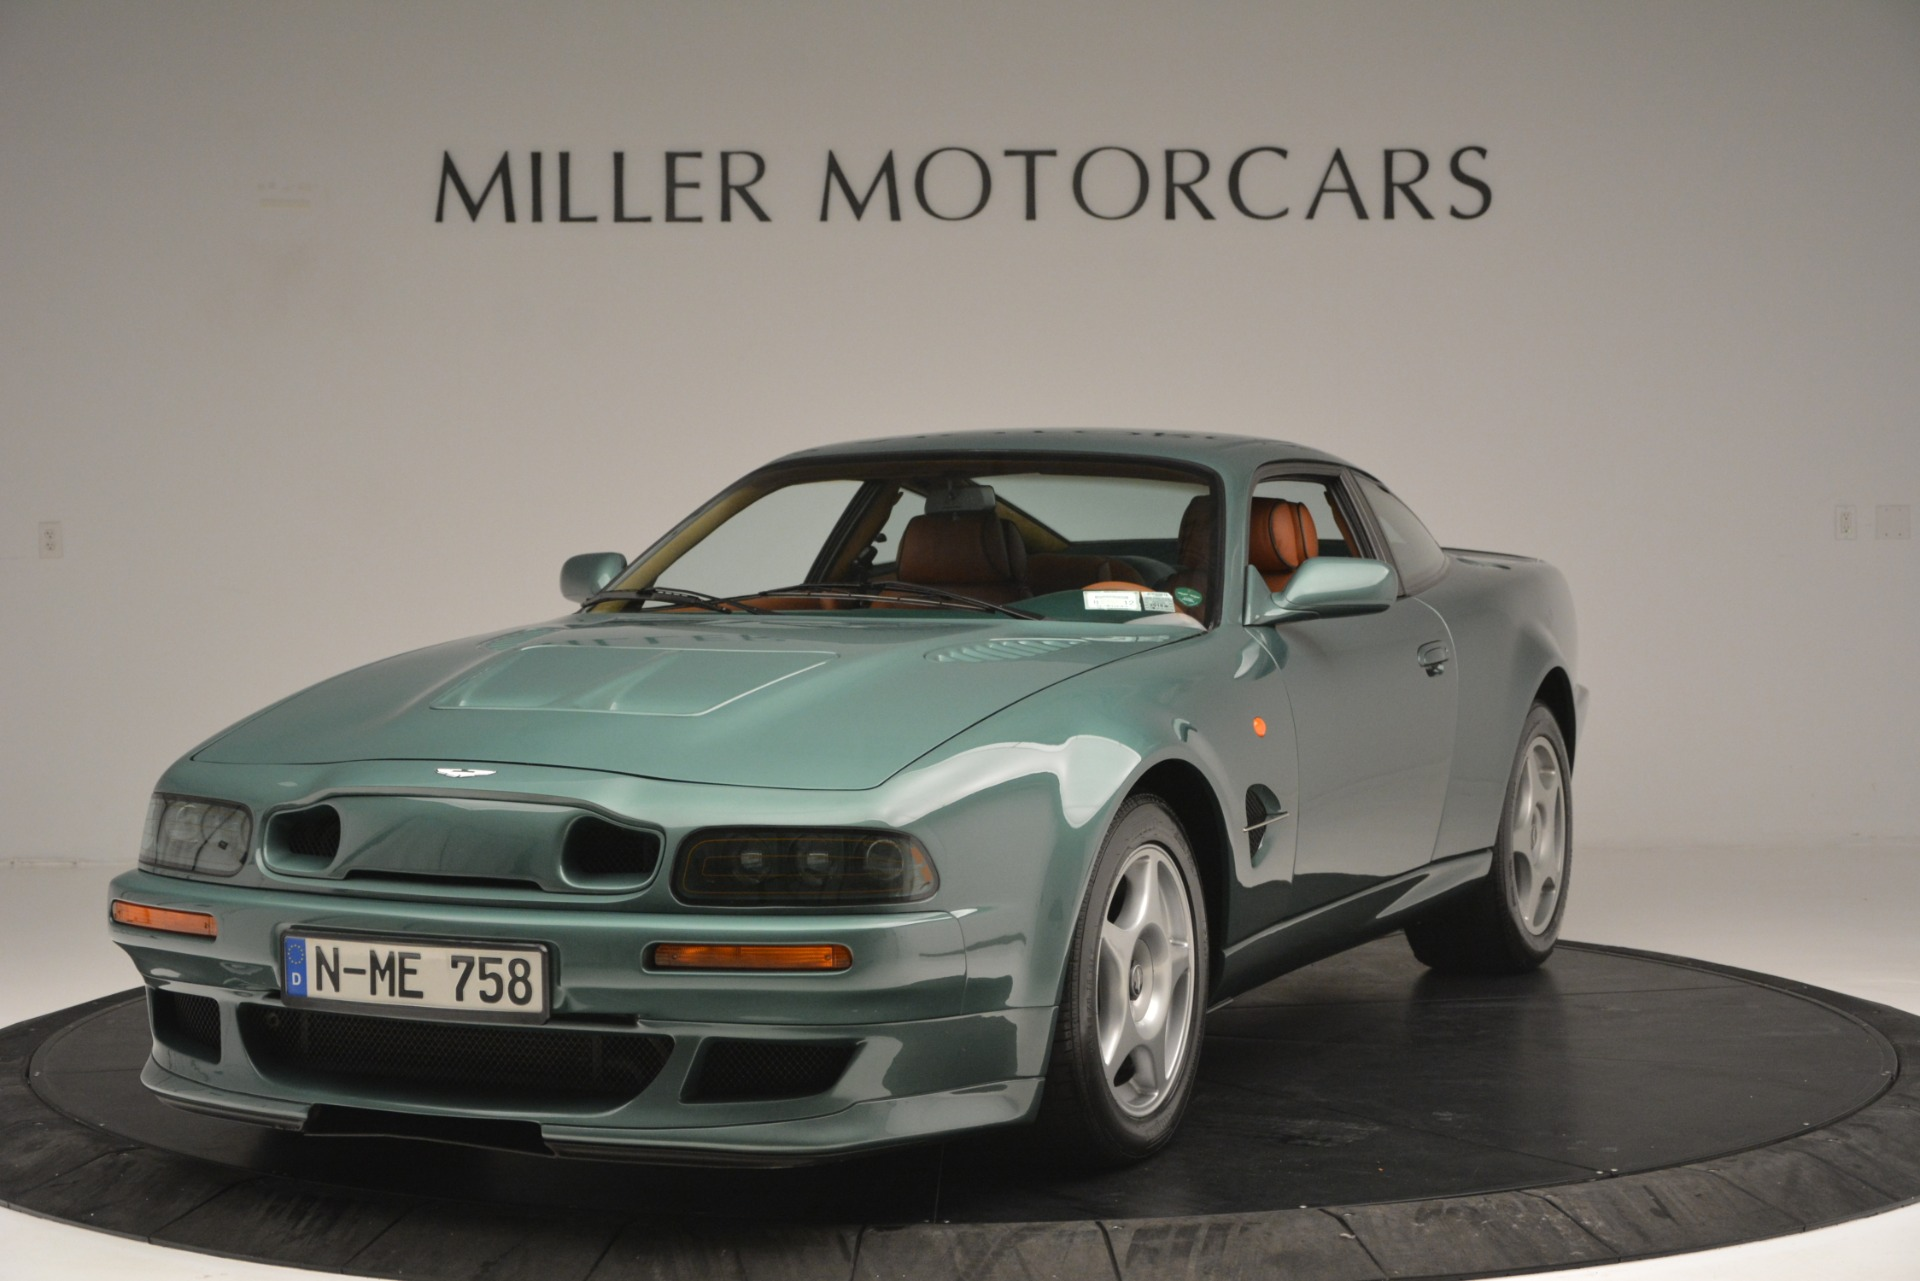 Used 1999 Aston Martin V8 Vantage Le Mans V600 Coupe For Sale In Westport, CT 2789_p2